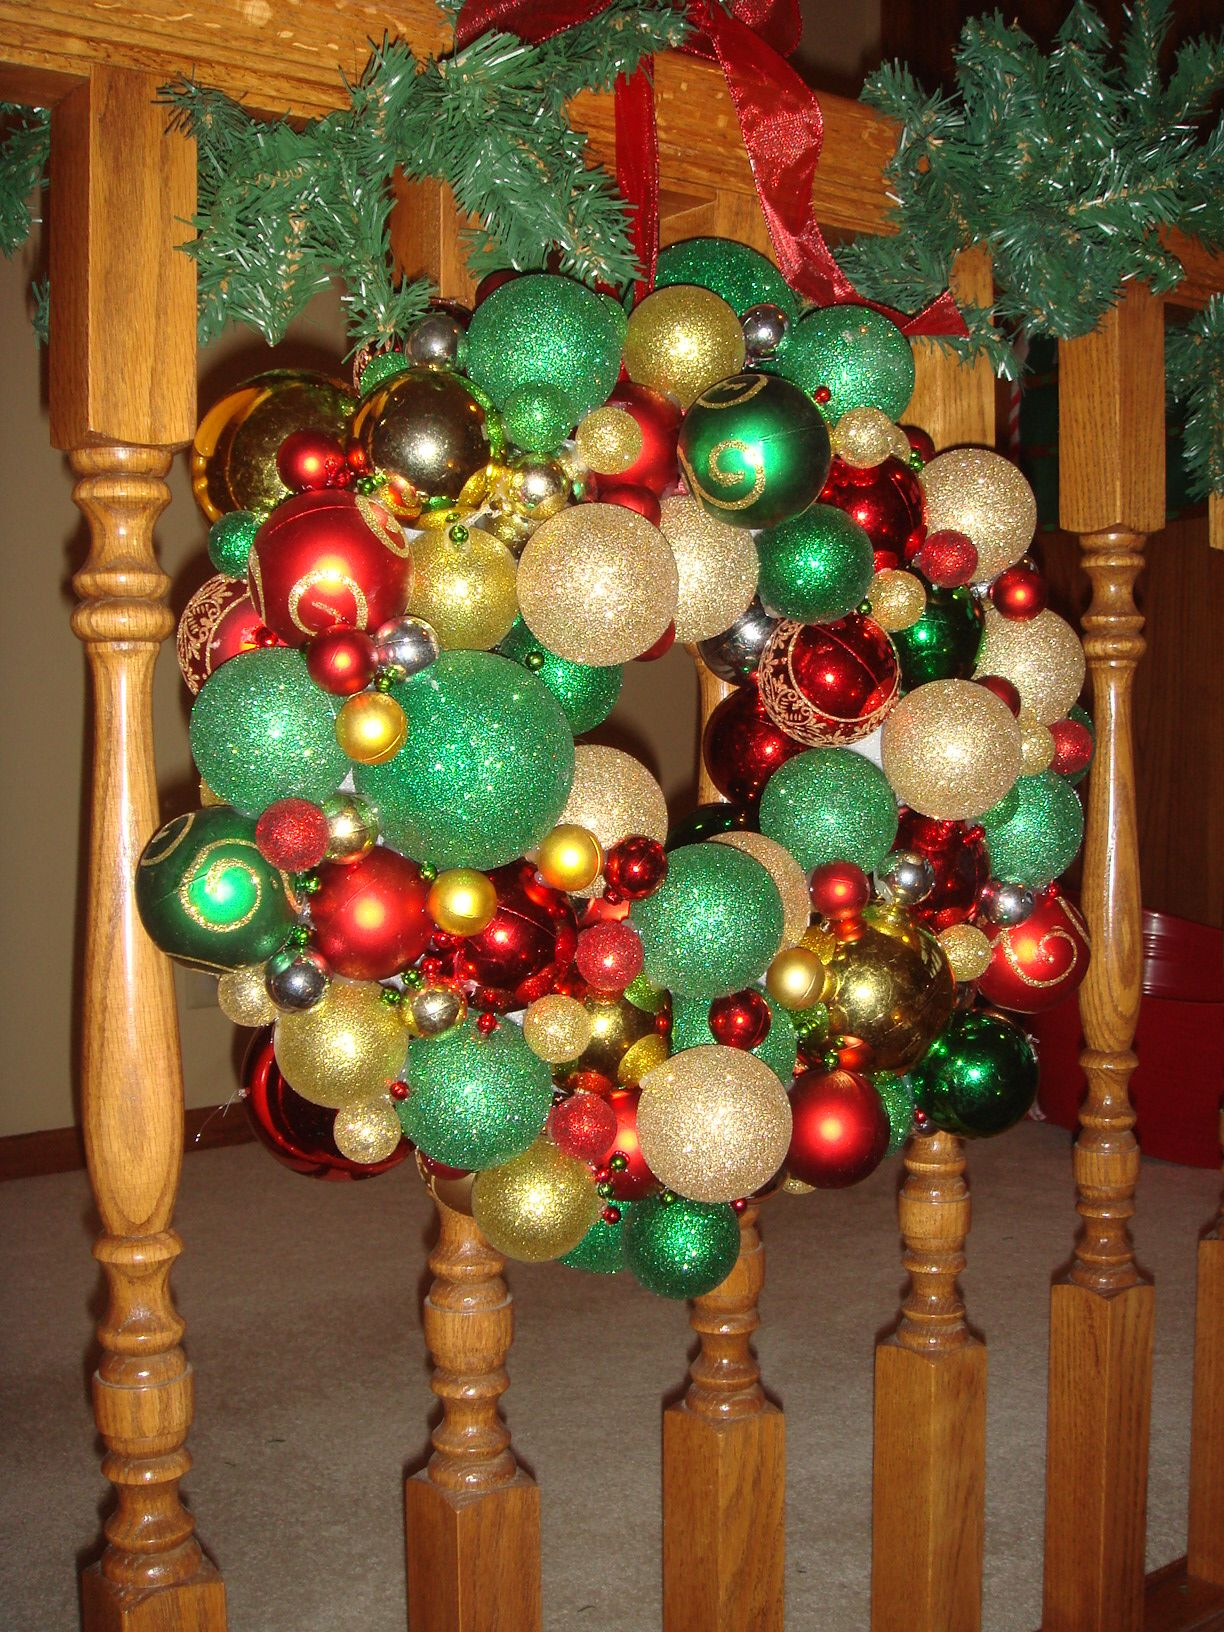 Ornament Wreath made out of shatterproof ornaments, hot